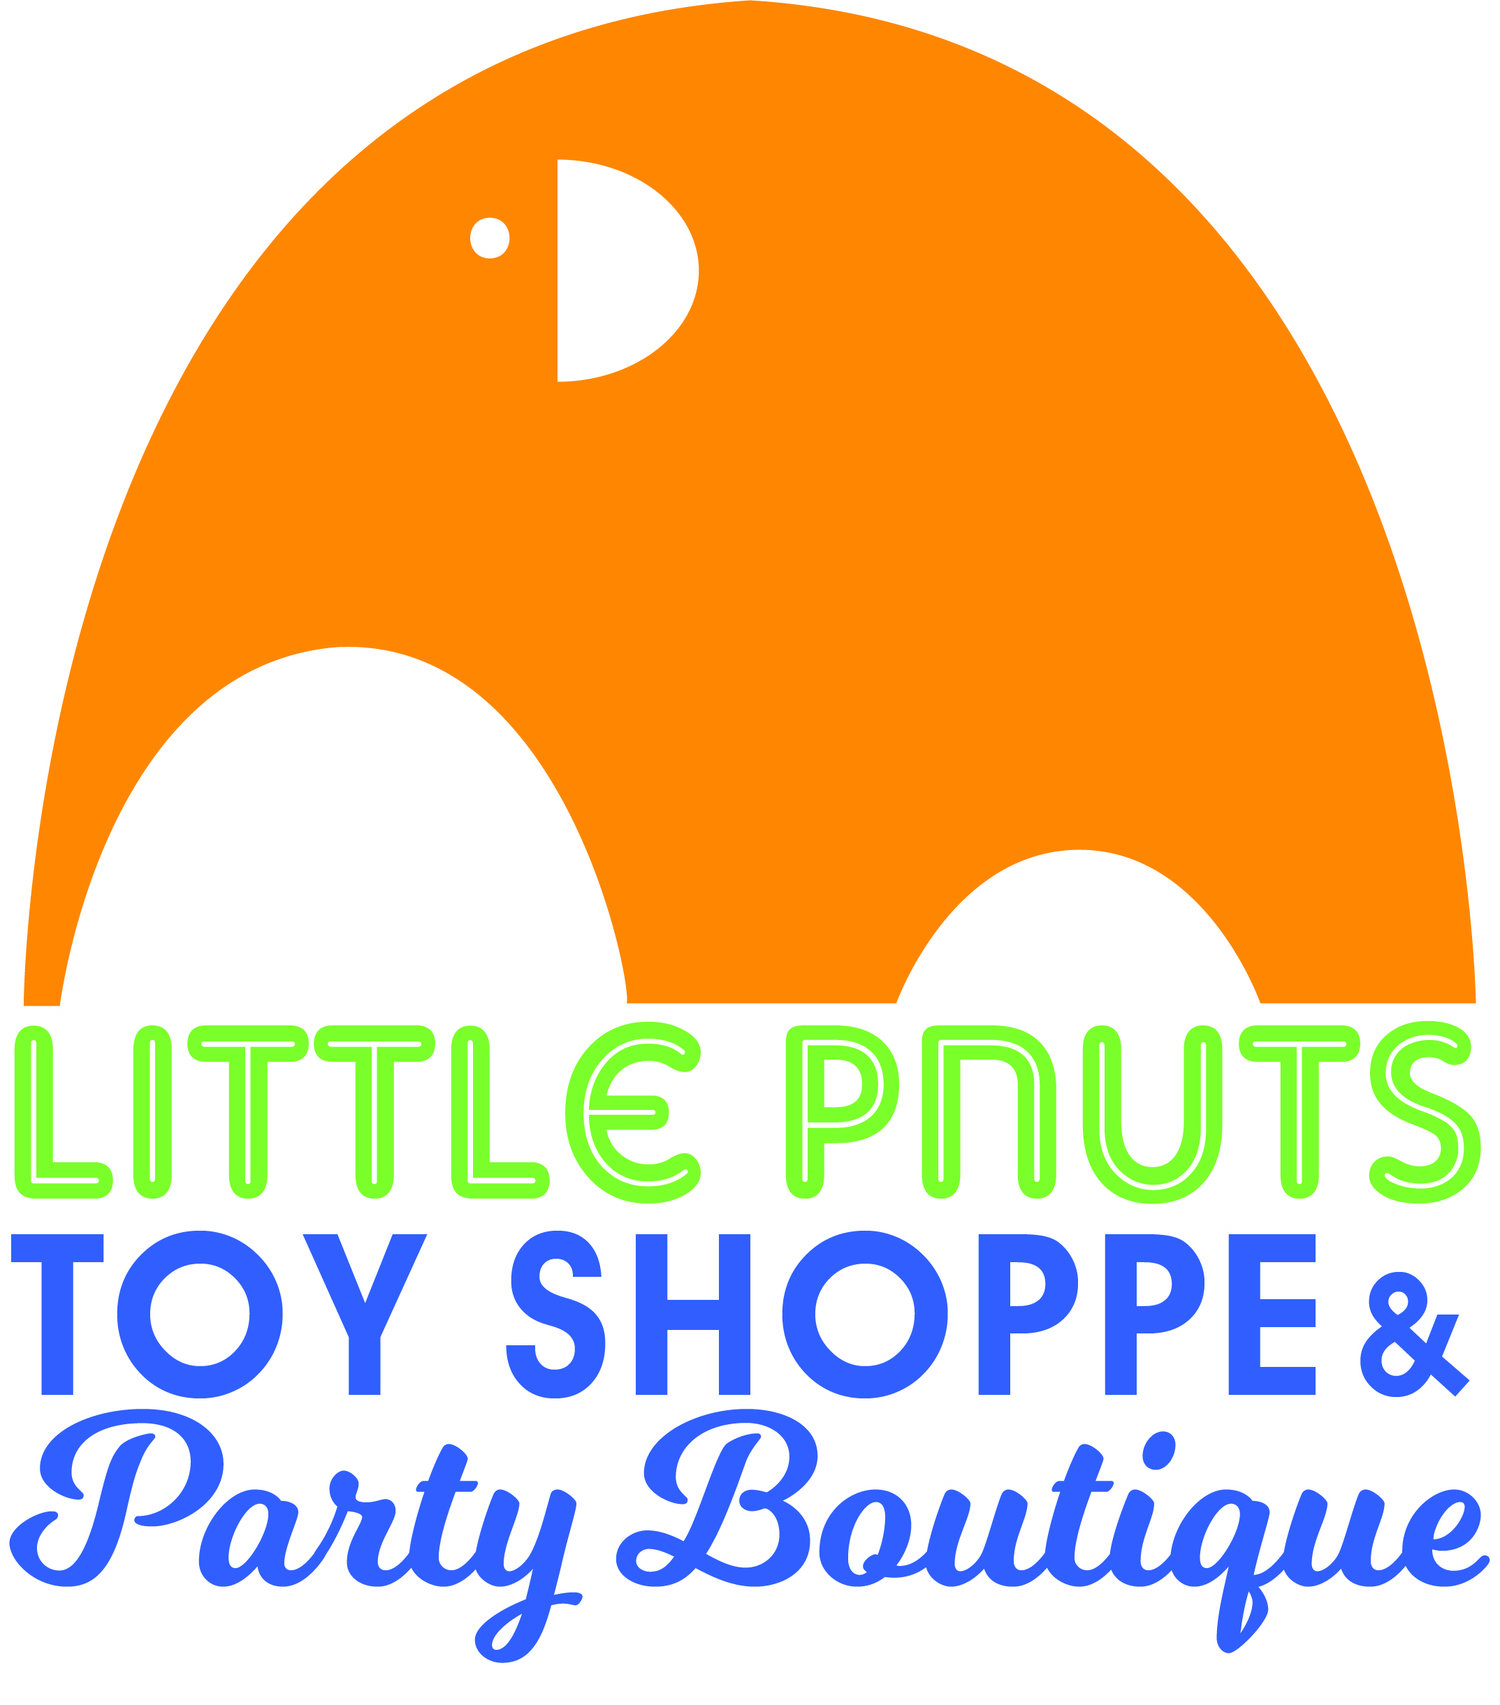 Little Pnuts Toy Shoppe & Party Boutique